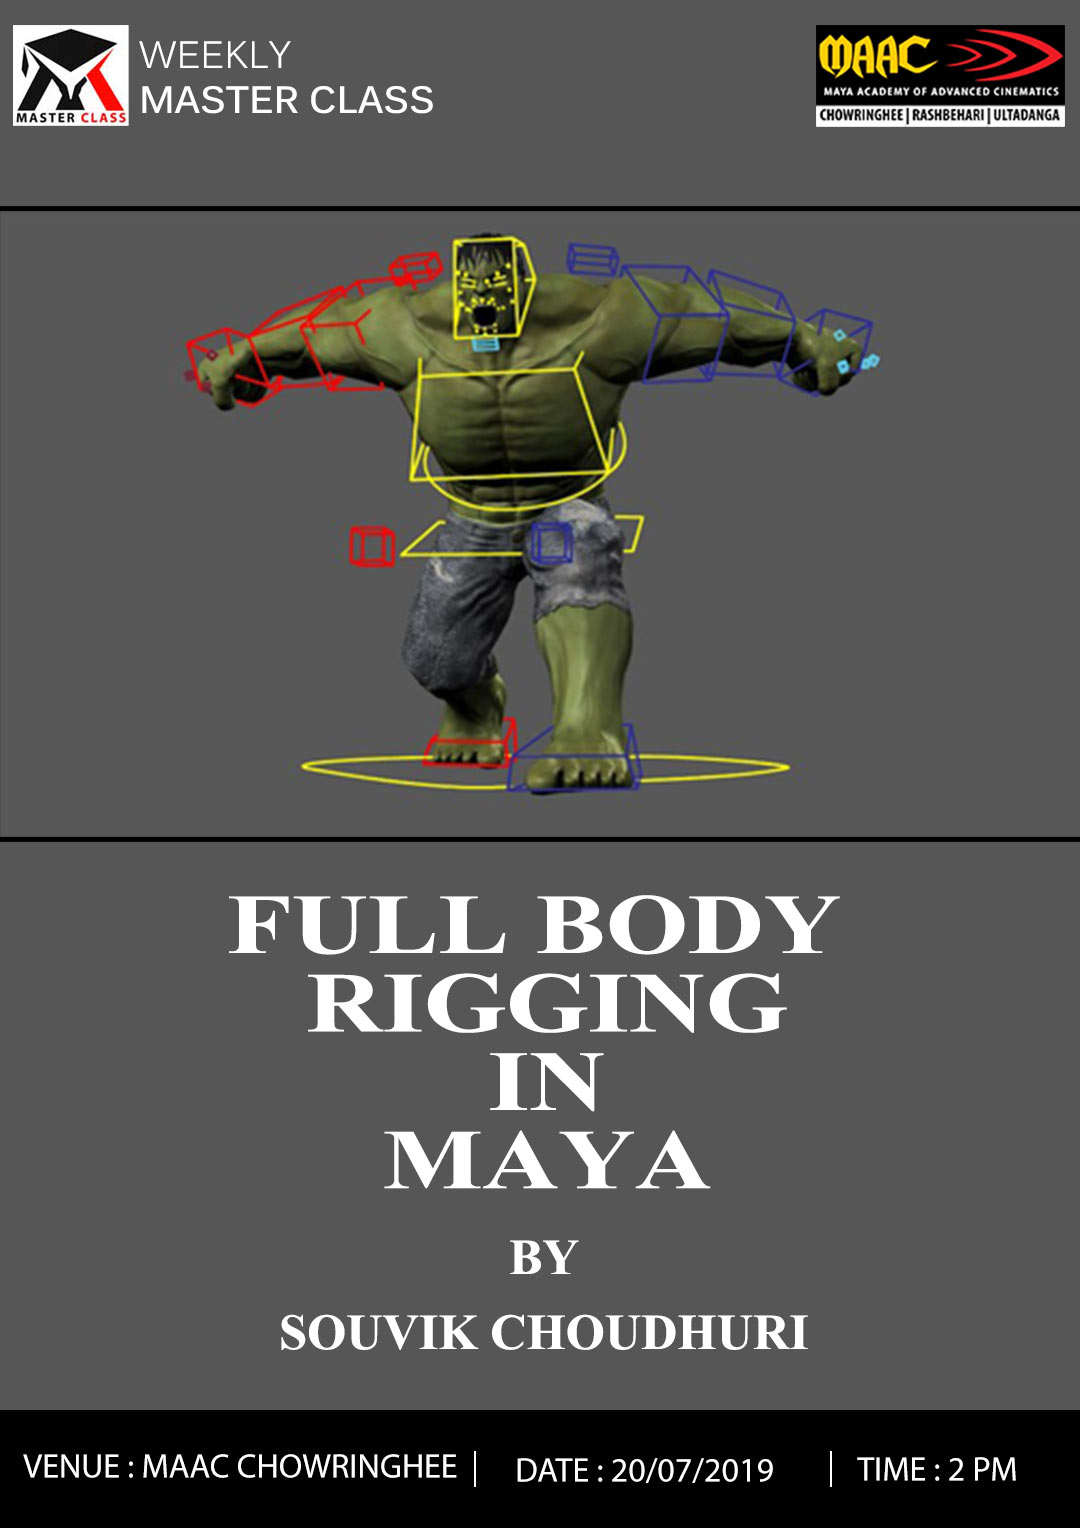 Weekly Master Class on Full Body Rigging in MAYA